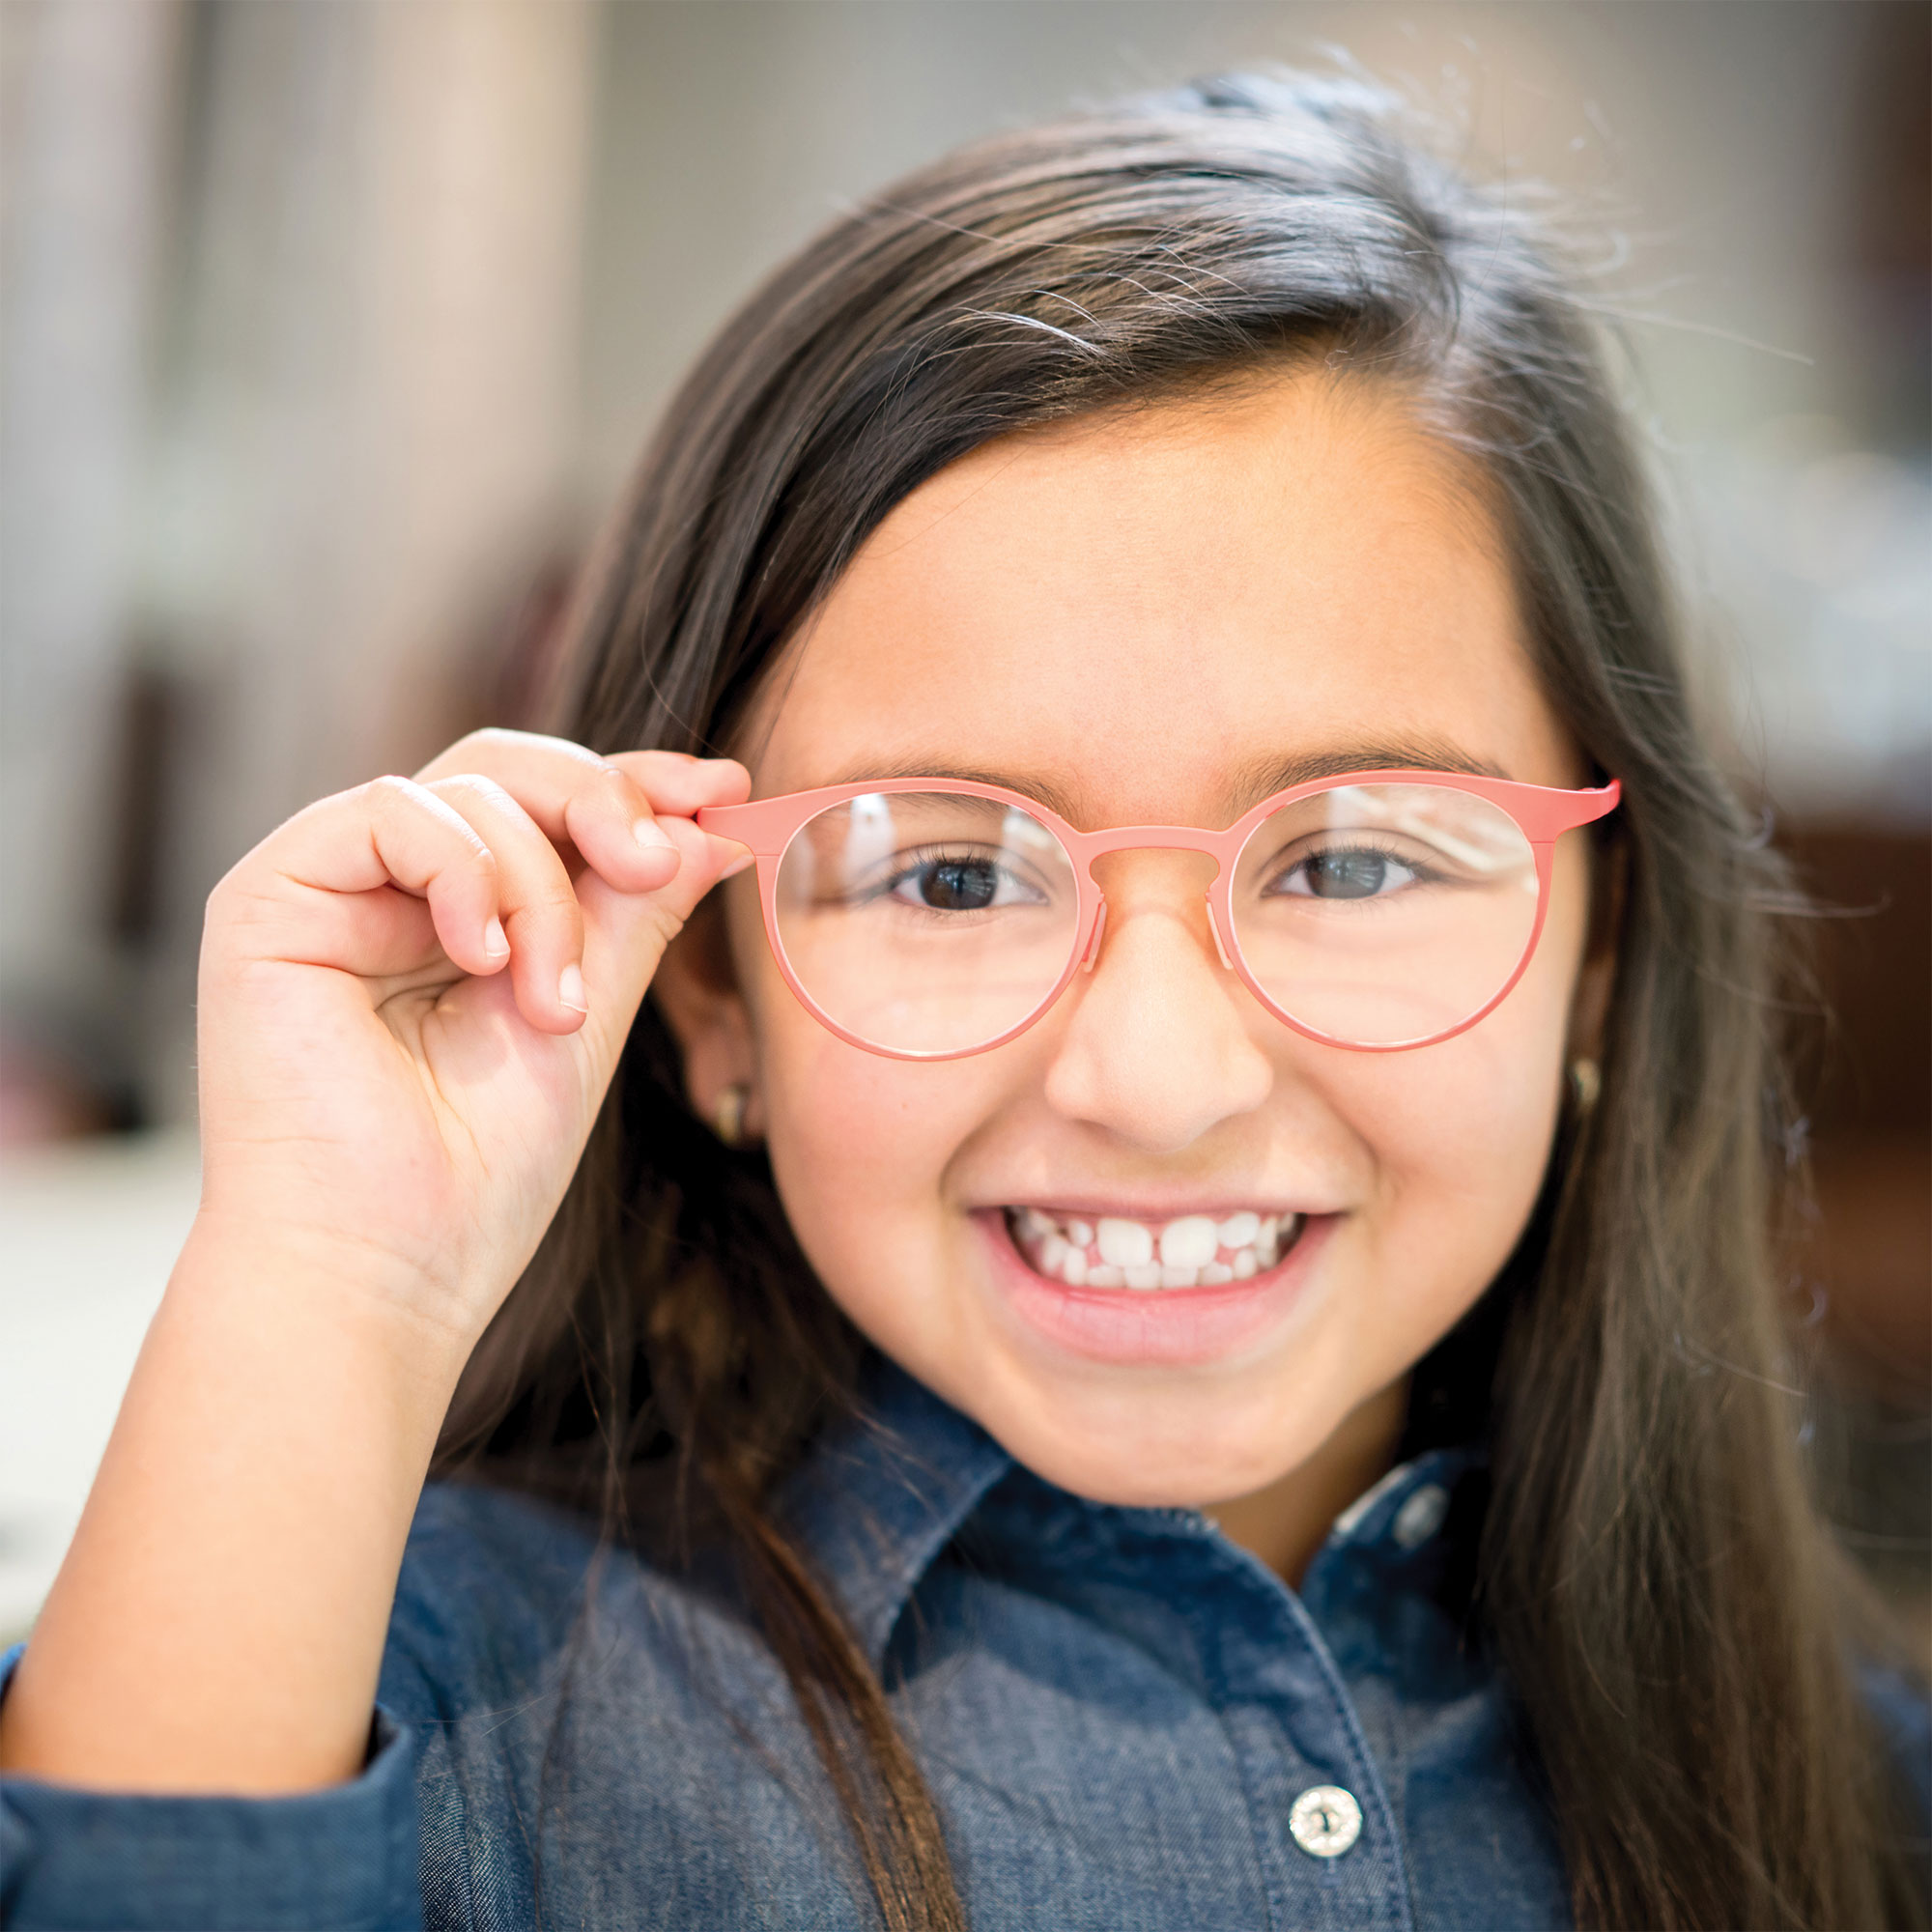 A young girl smiles while holding the frame of her pink horn-rimmed glasses